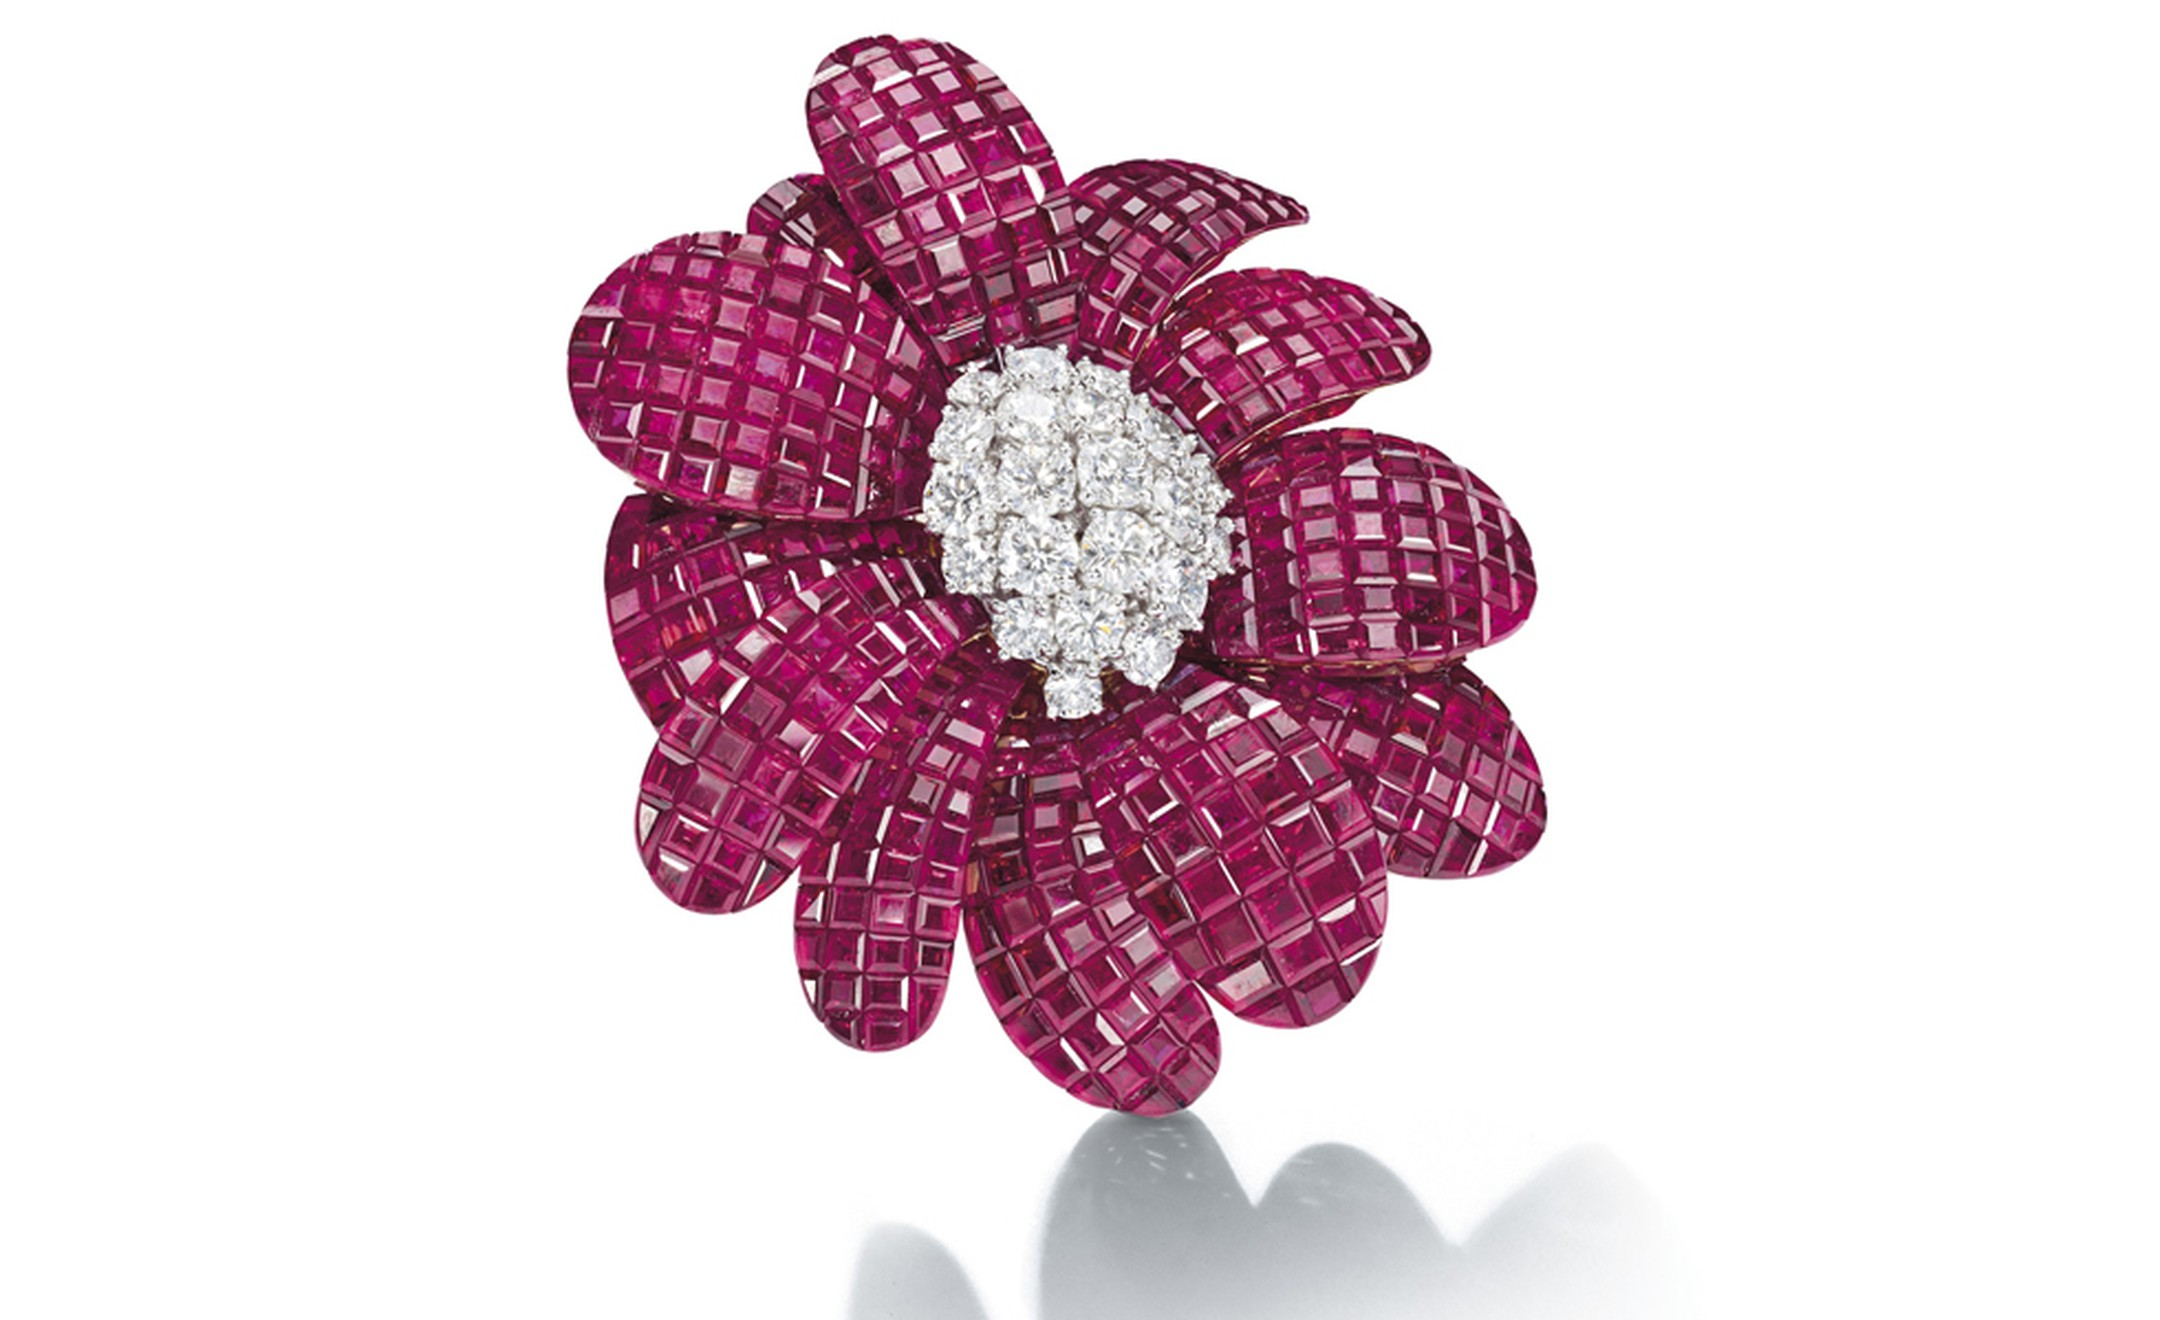 Lot 165. A ruby and diamond 'Cadix' Brooch, br Van Cleef & Arpels.Designed as a flowerhead, the mystery-set ruby petals centering on brilliant-cut diamond pistil mounted en tremblant, mounted in platinum and gold.  Estimate CHF 200,000 - CHF 300,000